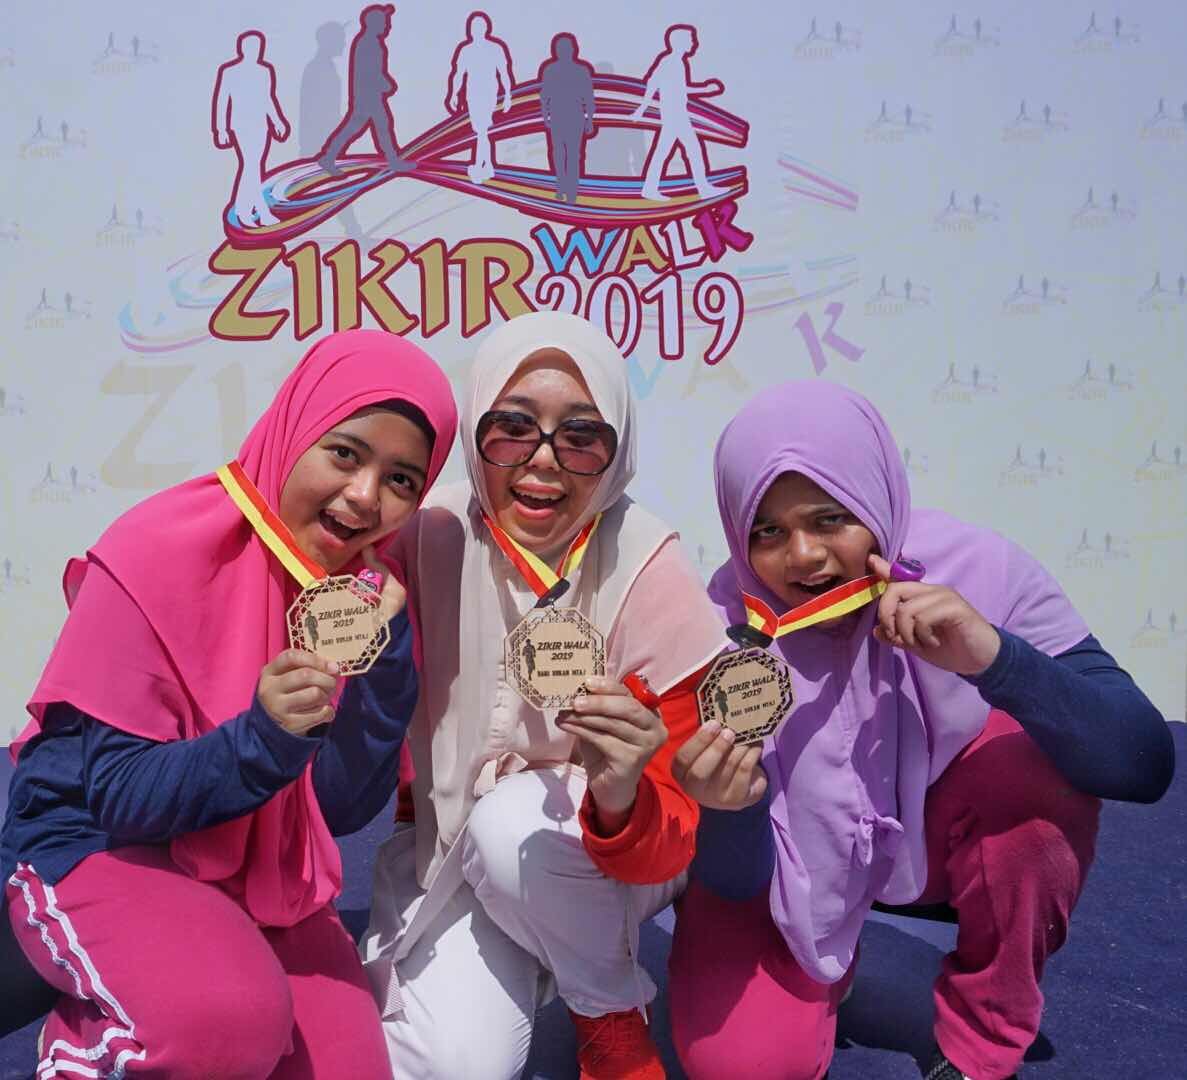 zikir walk 2019 premium beautiful therapants maharani bukit jelutong